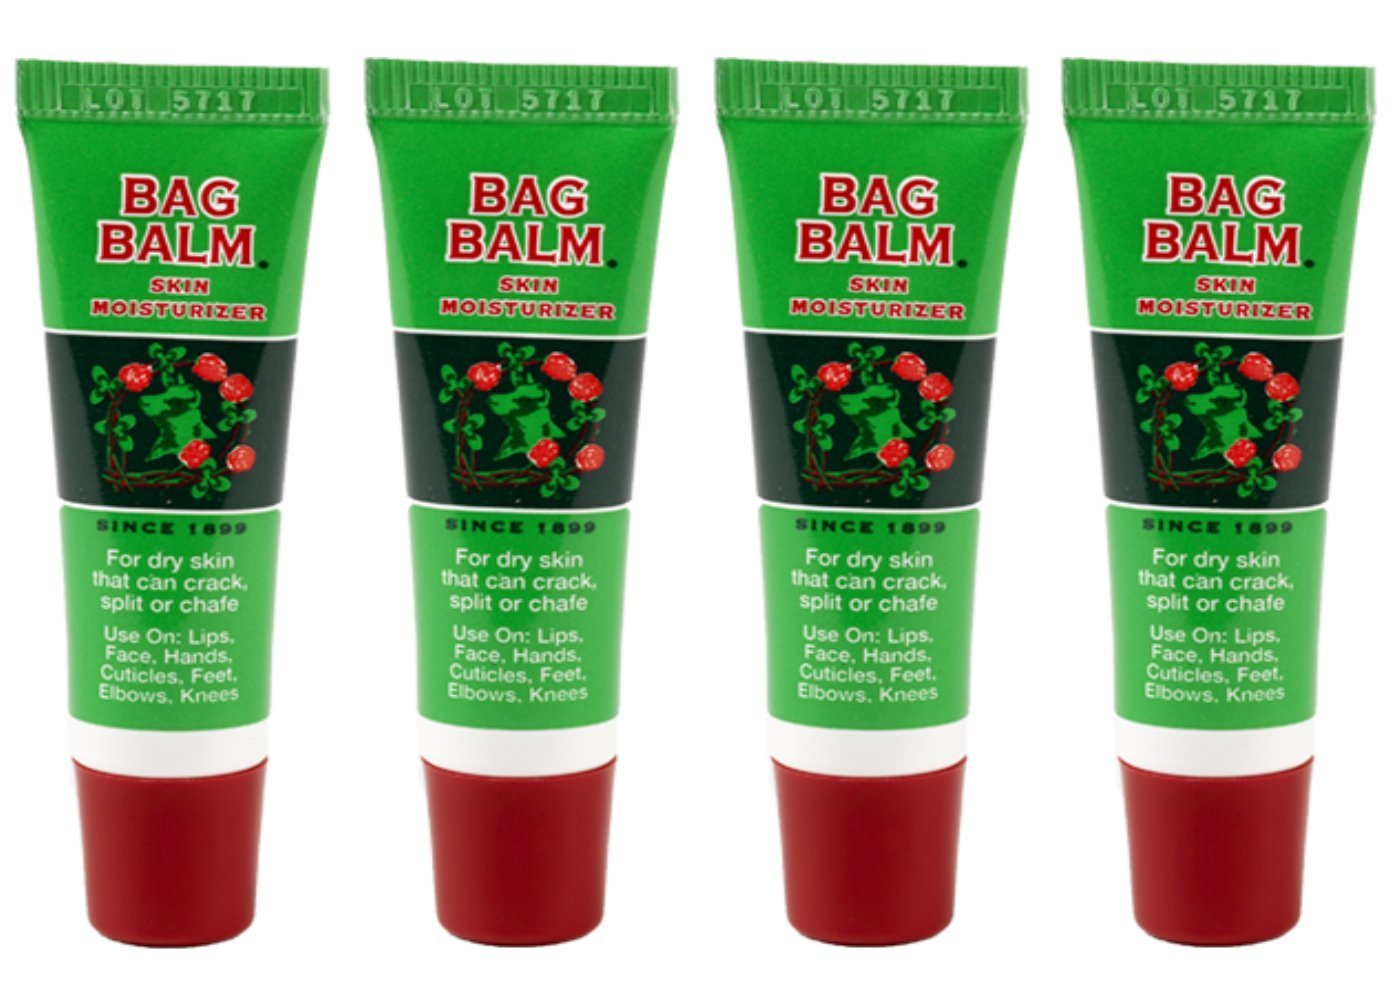 Vermonts Original Bag Balm 8 Ounce Skin Moisturizer For Rose Lips Vaseline Lip Therapy Mini The Petroleum Jell Ori 025 On Go Tube 4 Pack